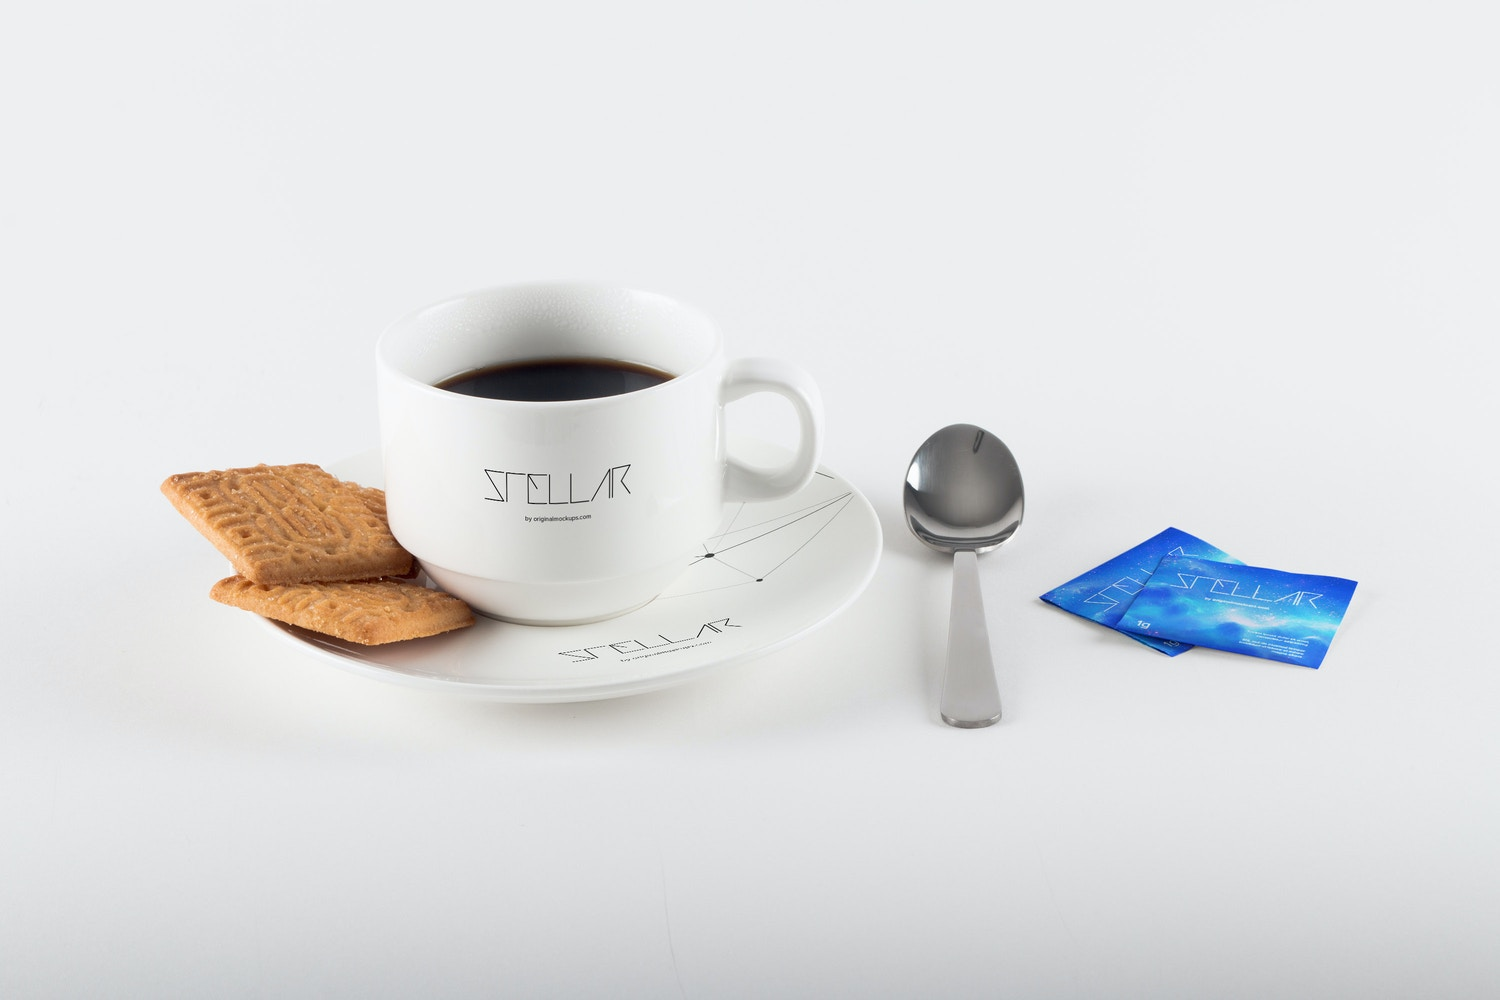 Coffee Cup with Cookies Mockup 02 by Original Mockups on Original Mockups